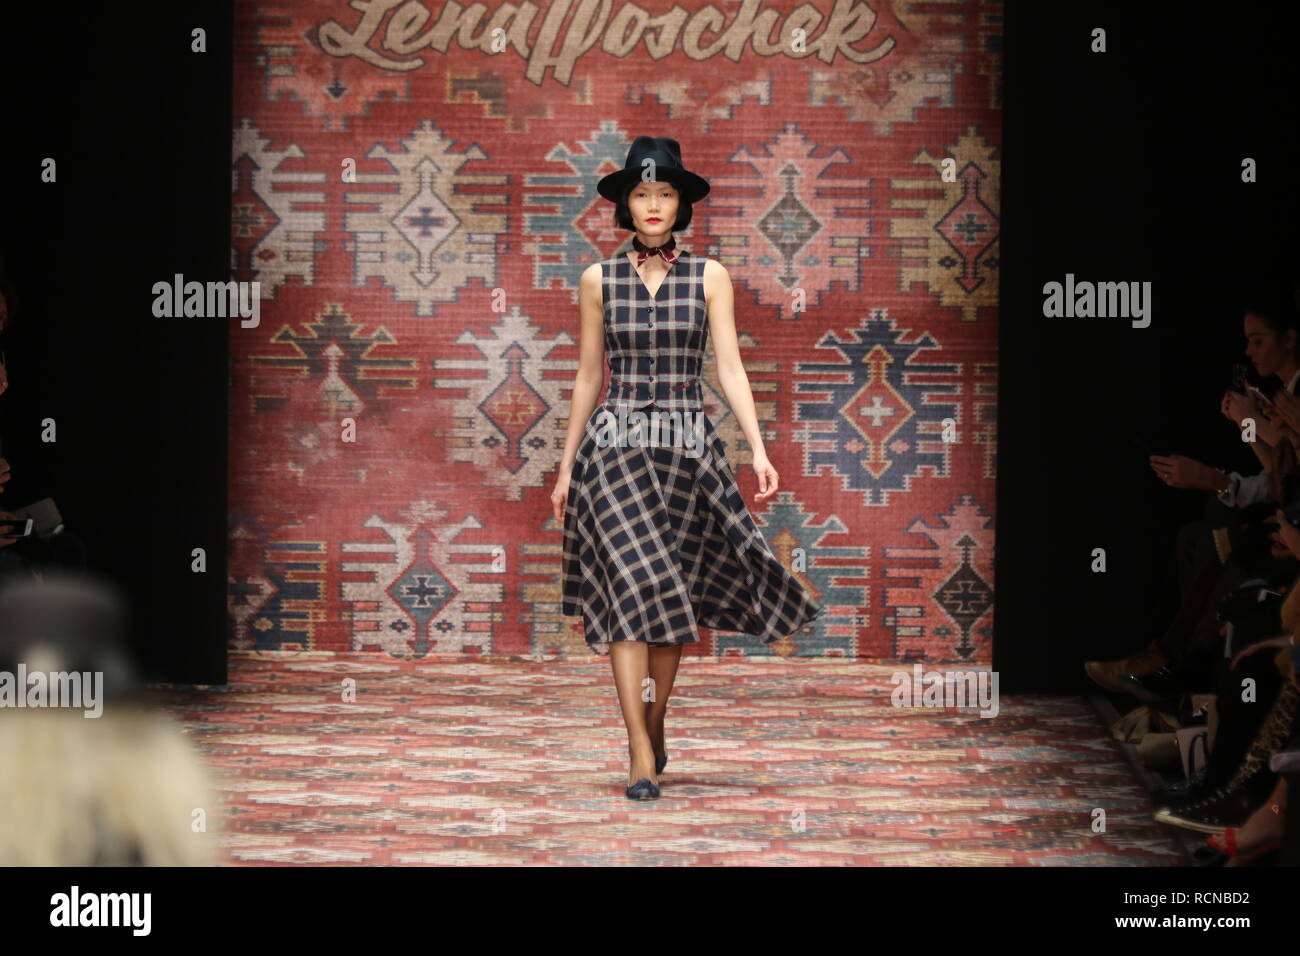 Autumn Winter Fashion 2019 High Resolution Stock Photography And Images Alamy